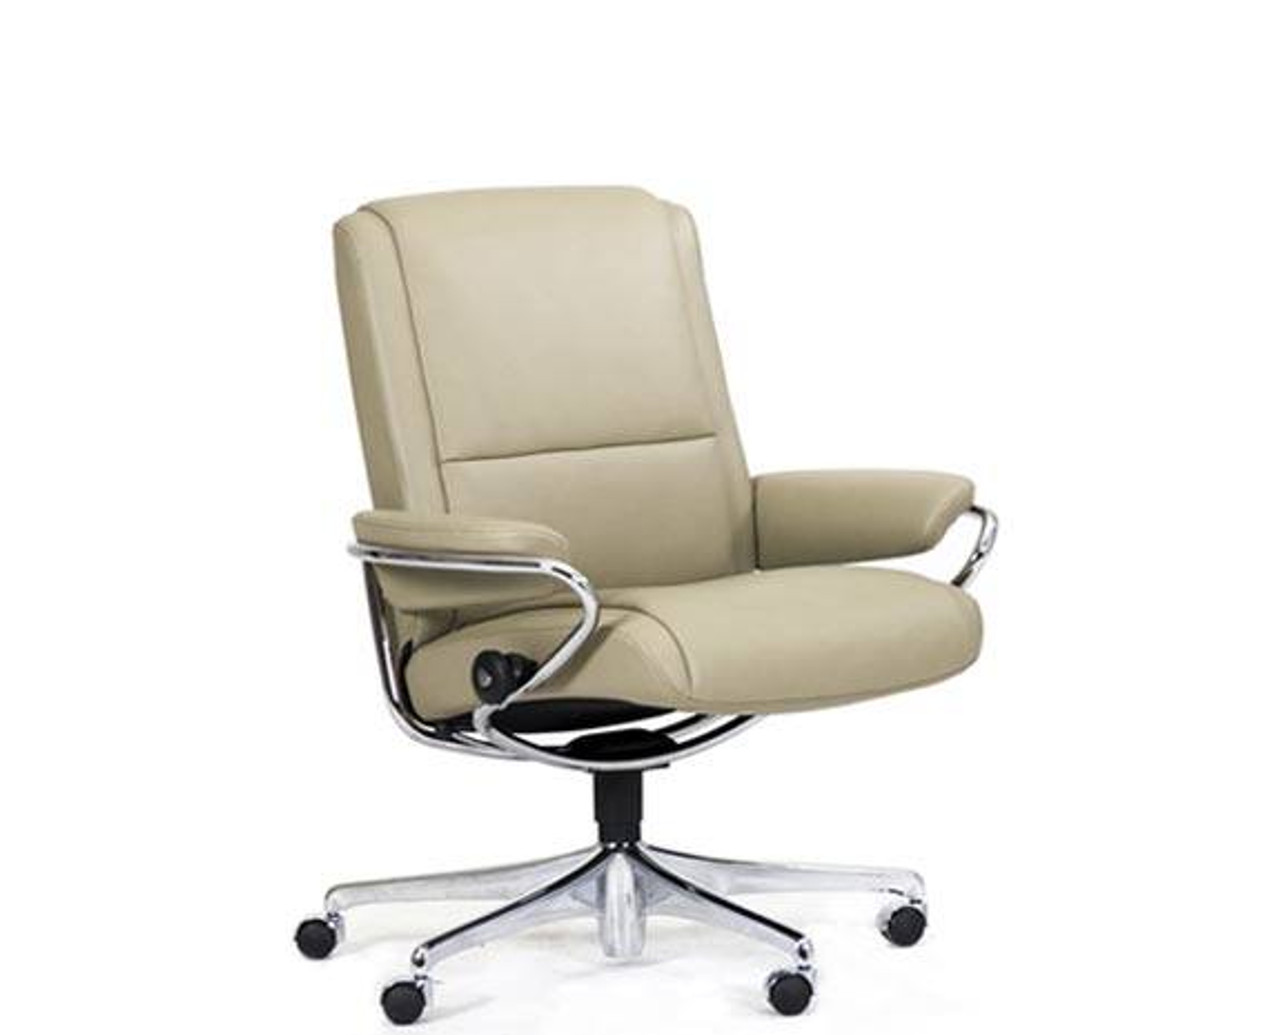 Stressless Paris Low Back Office Chair- Nationwide Delivery